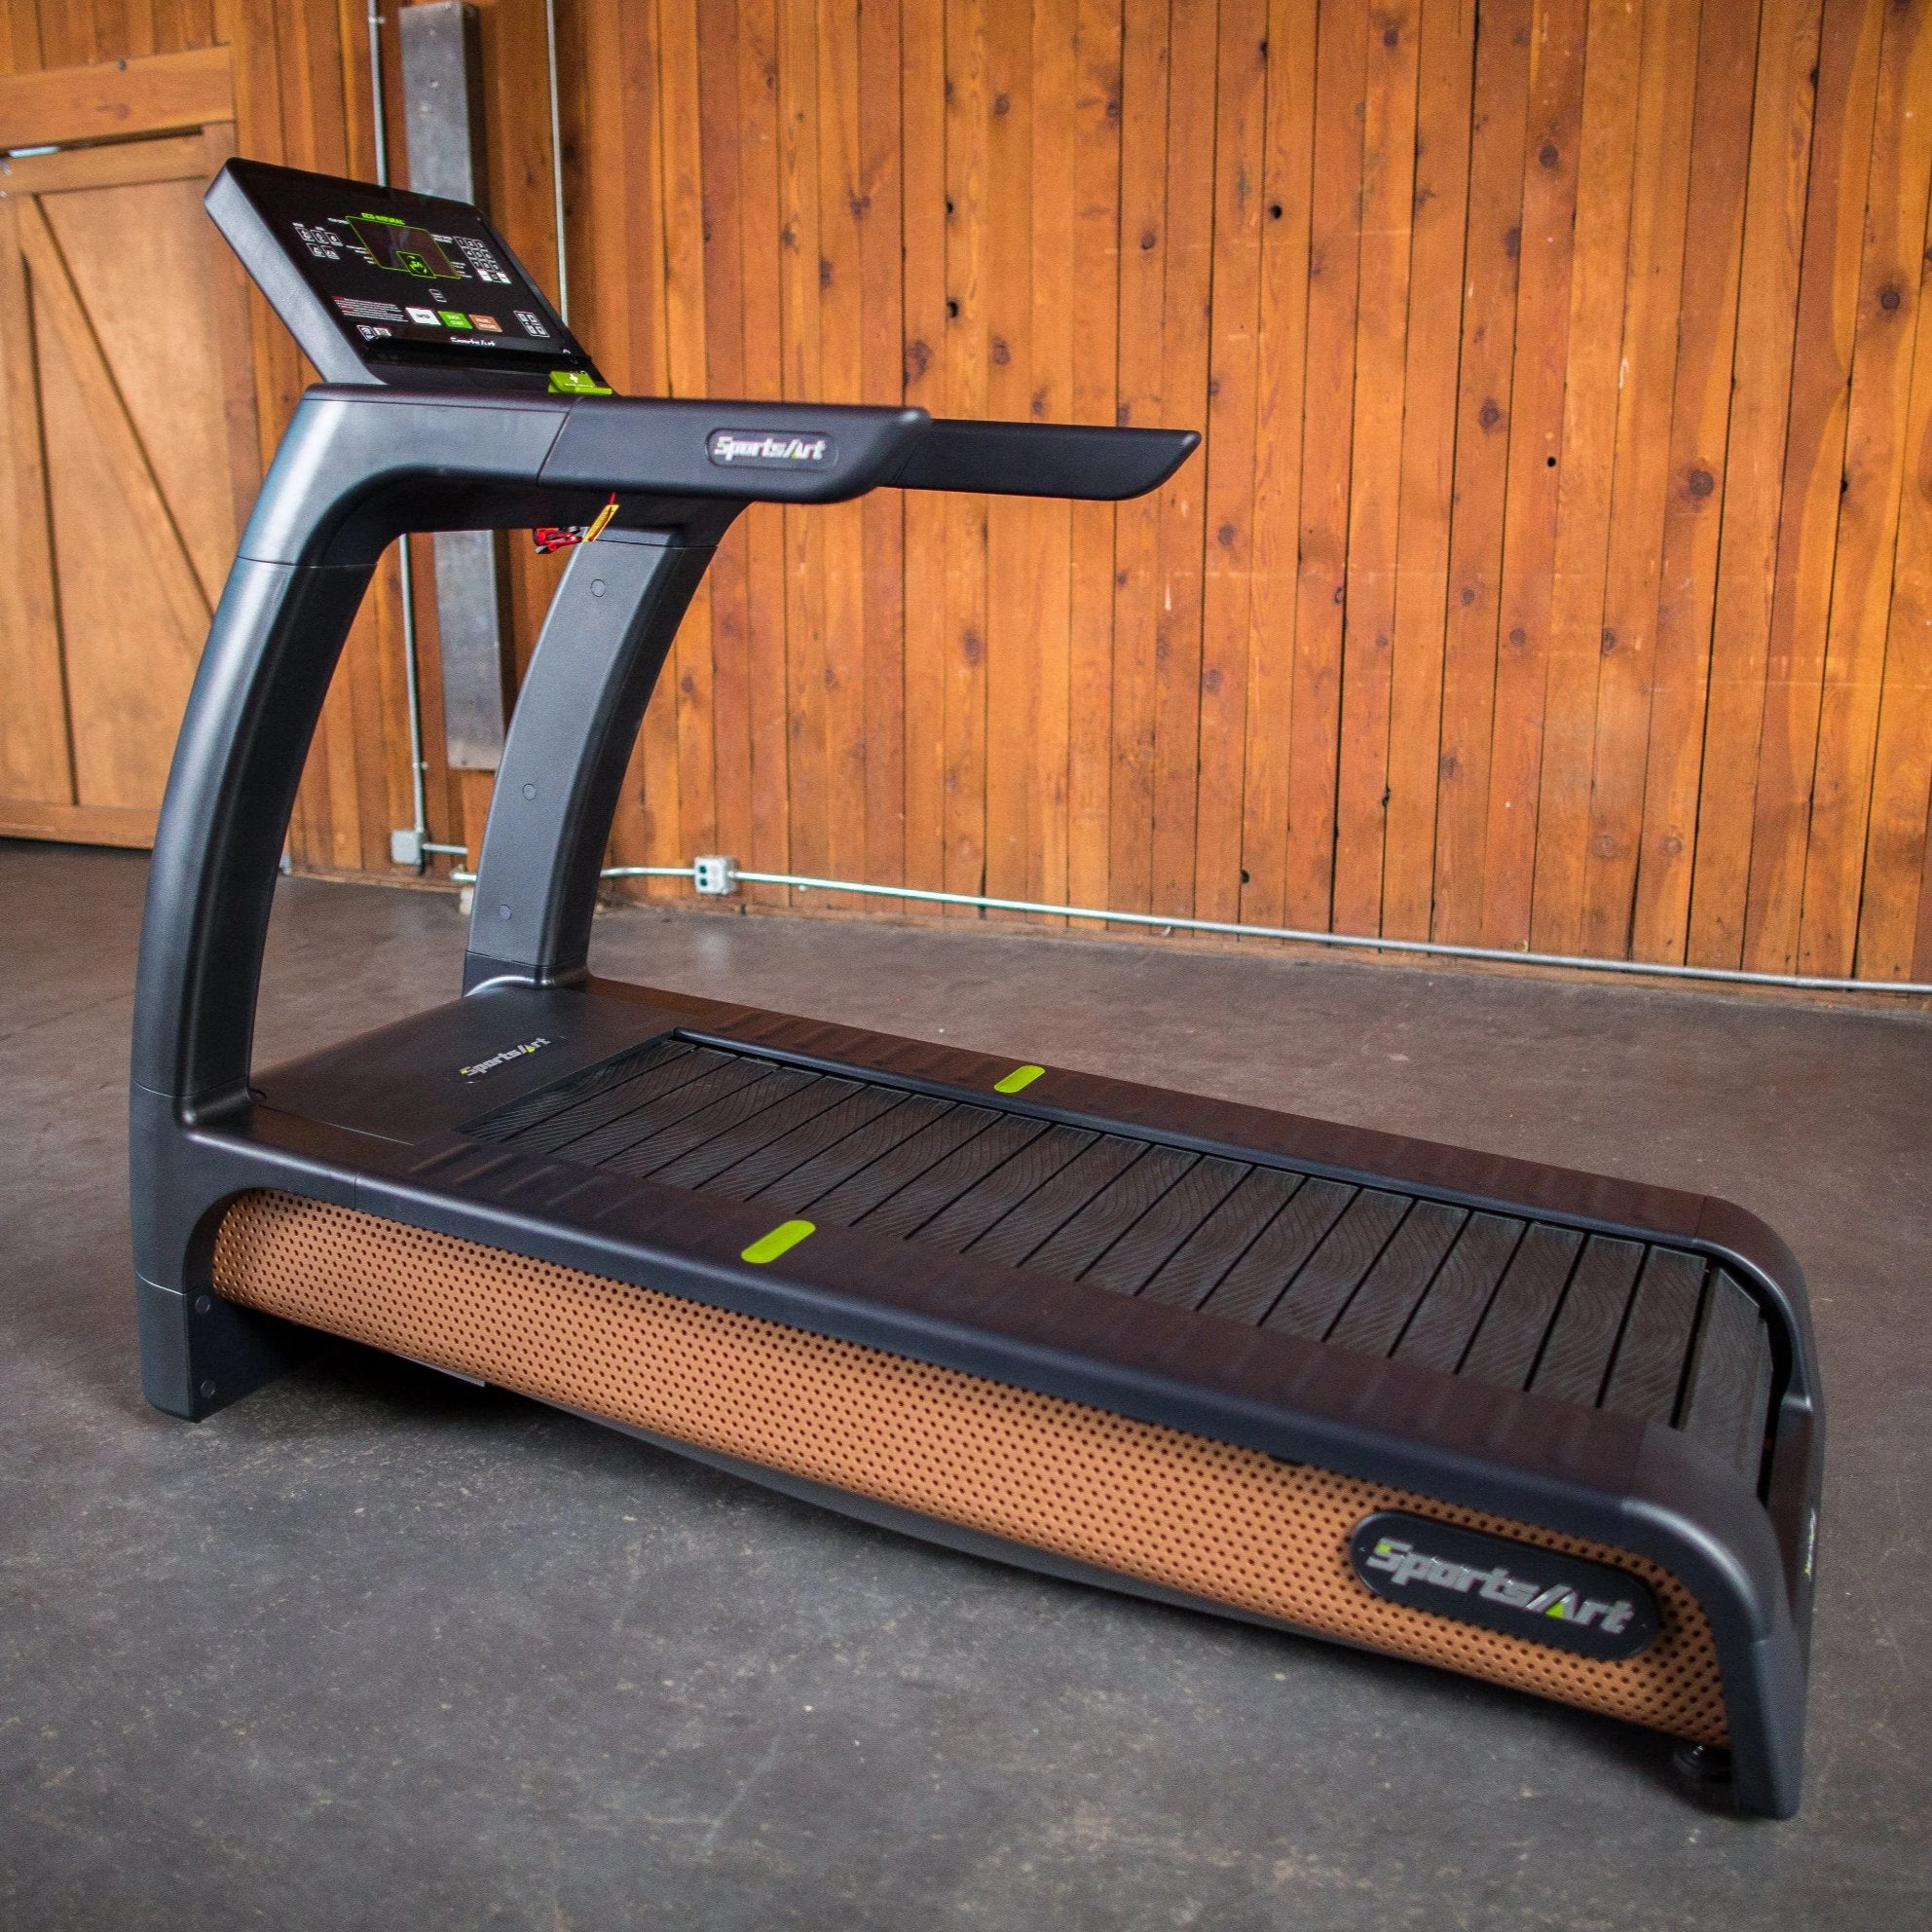 SportsArt N685 Eco-Natural Verde Treadmill